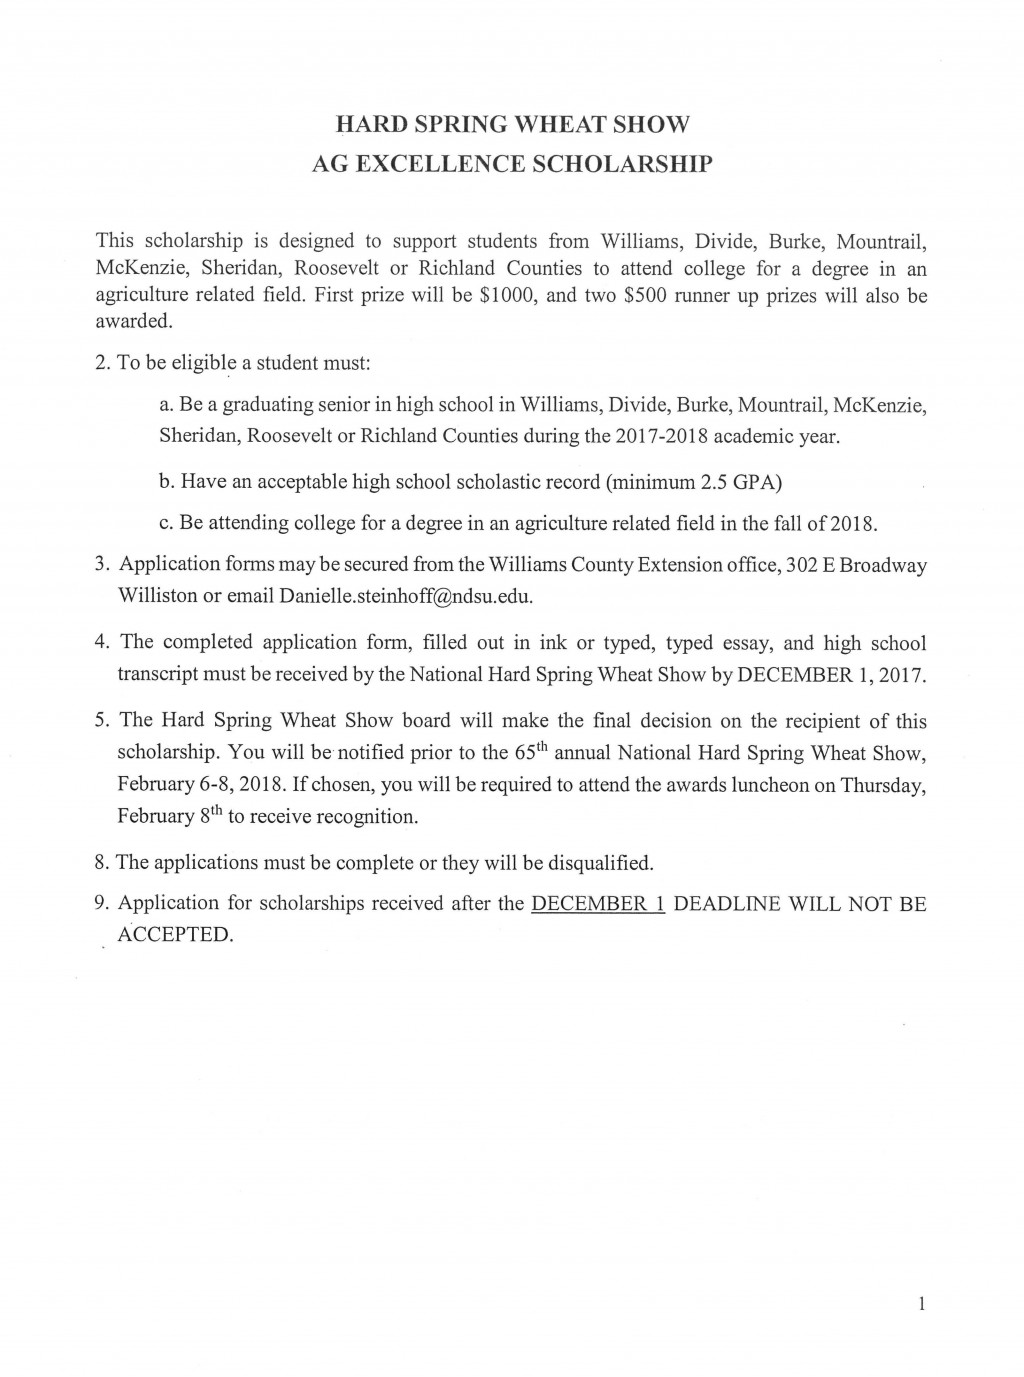 005 Essay Example Scholarships Page 1 Wonderful 2017 No College Canada Large